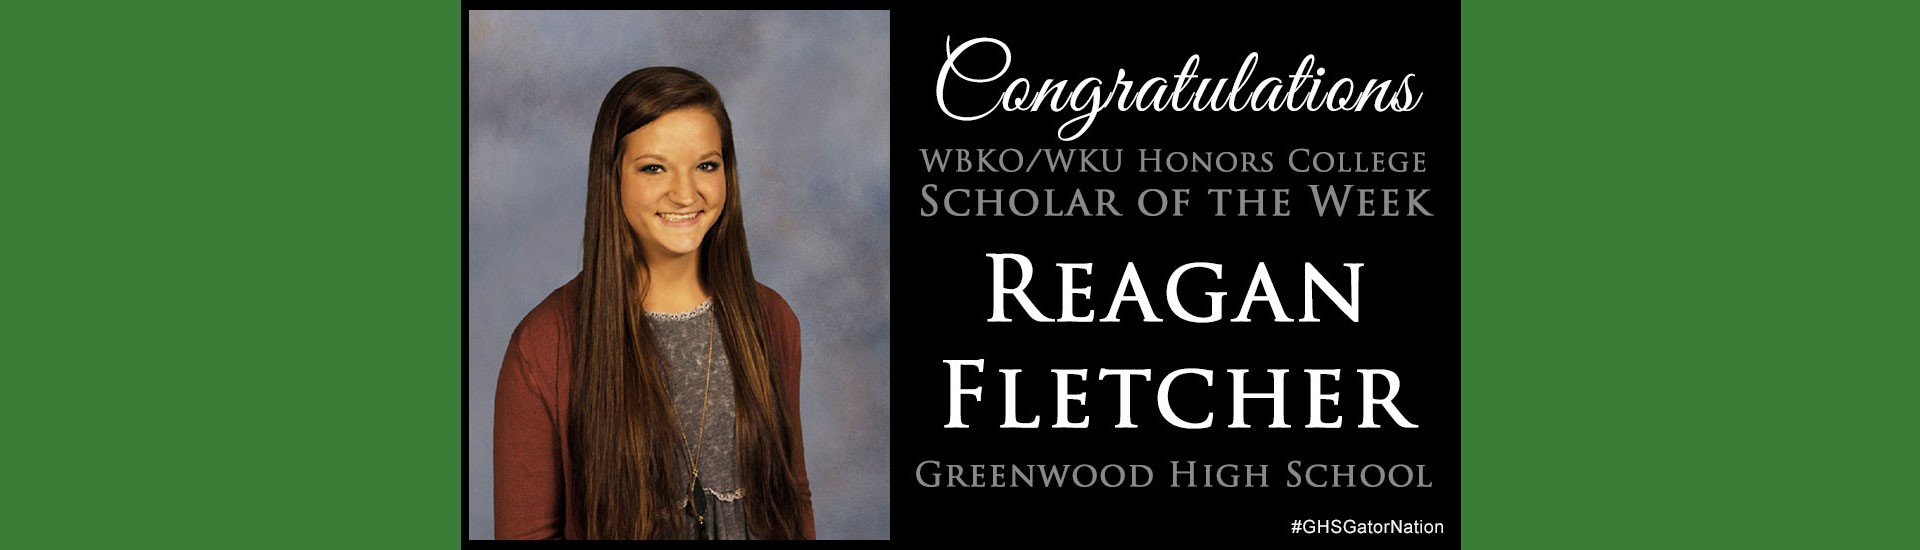 Scholar of the Week Reagan Fletcher